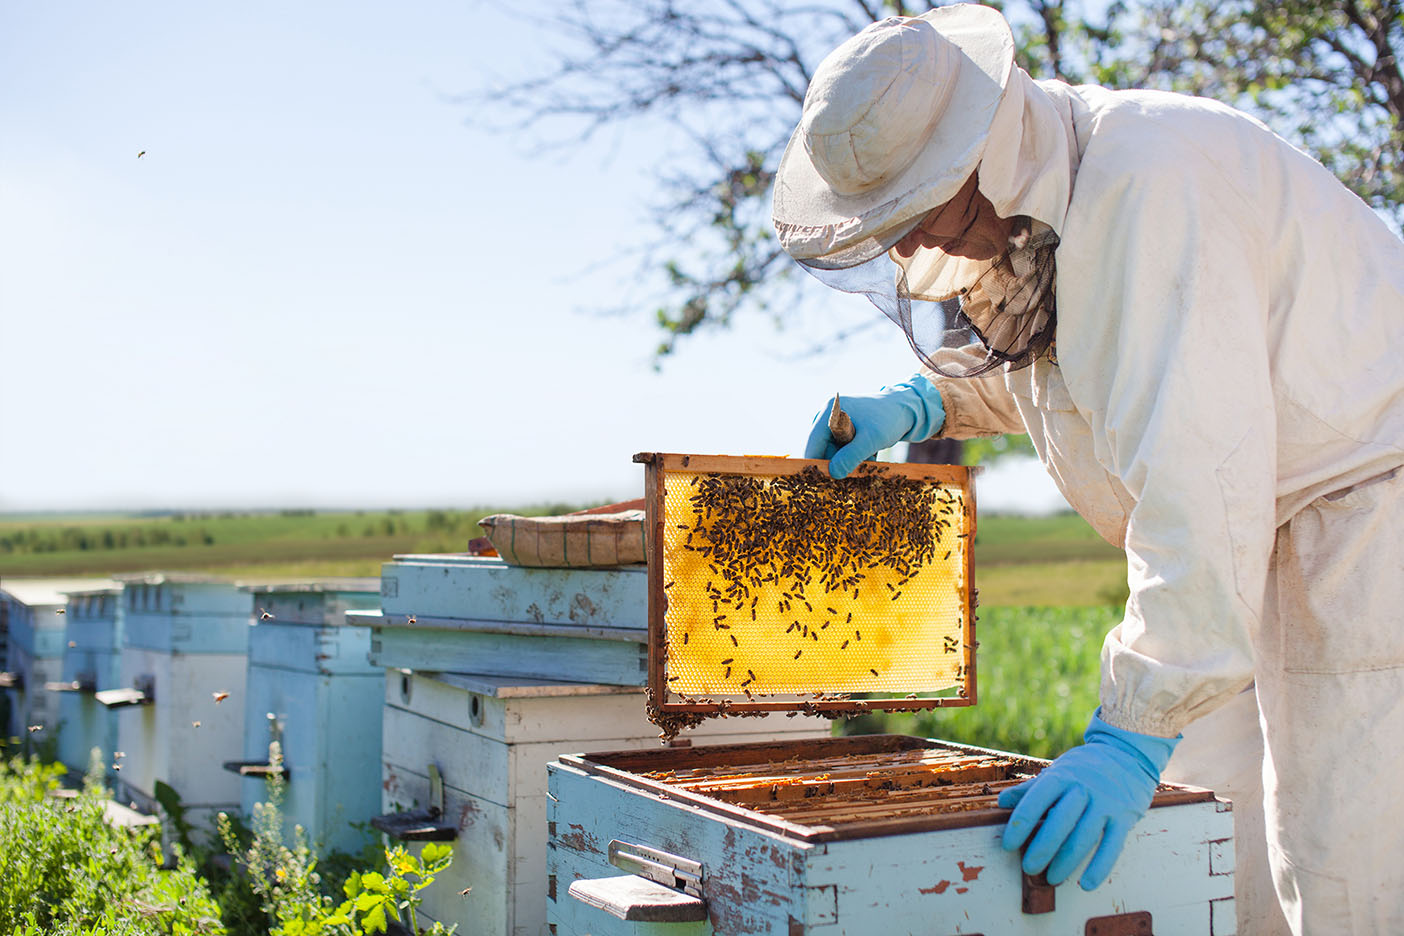 Beekeeper working with beehives on the apiary